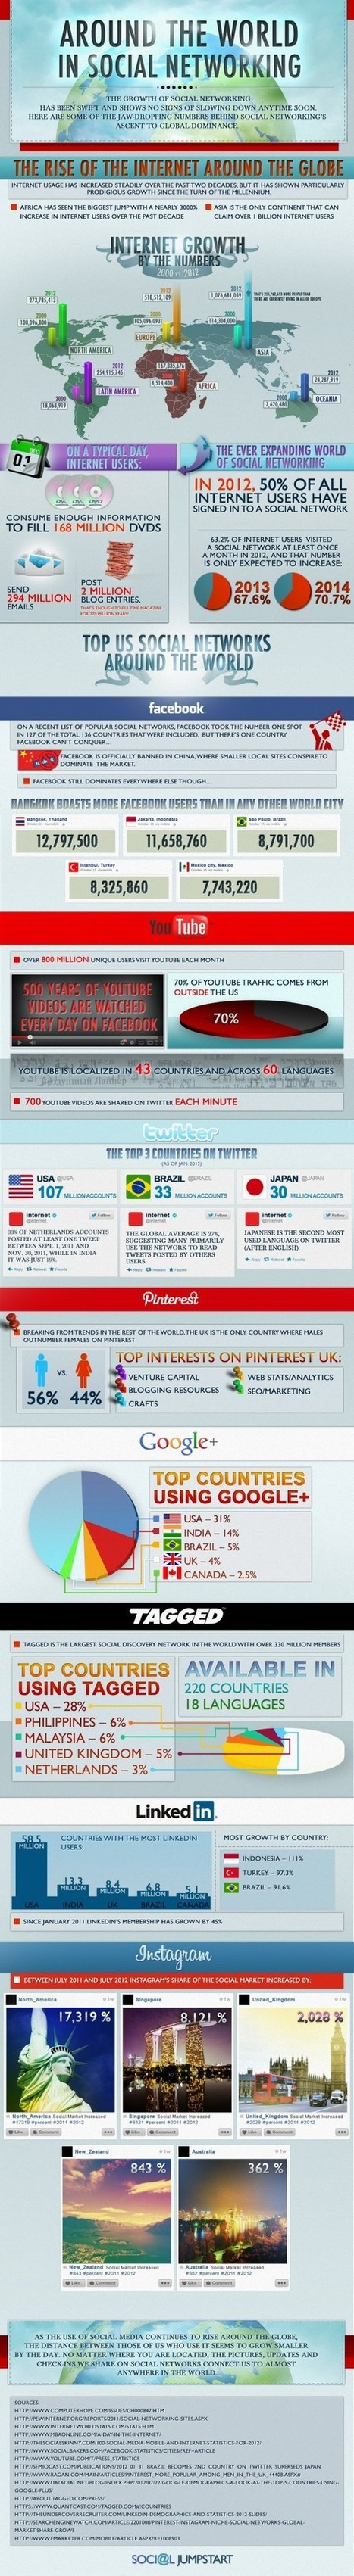 By @JennyDeVaughn - Social Precision Blog - Infographic: Around the World in SocialNetworking | Open Data | Scoop.it